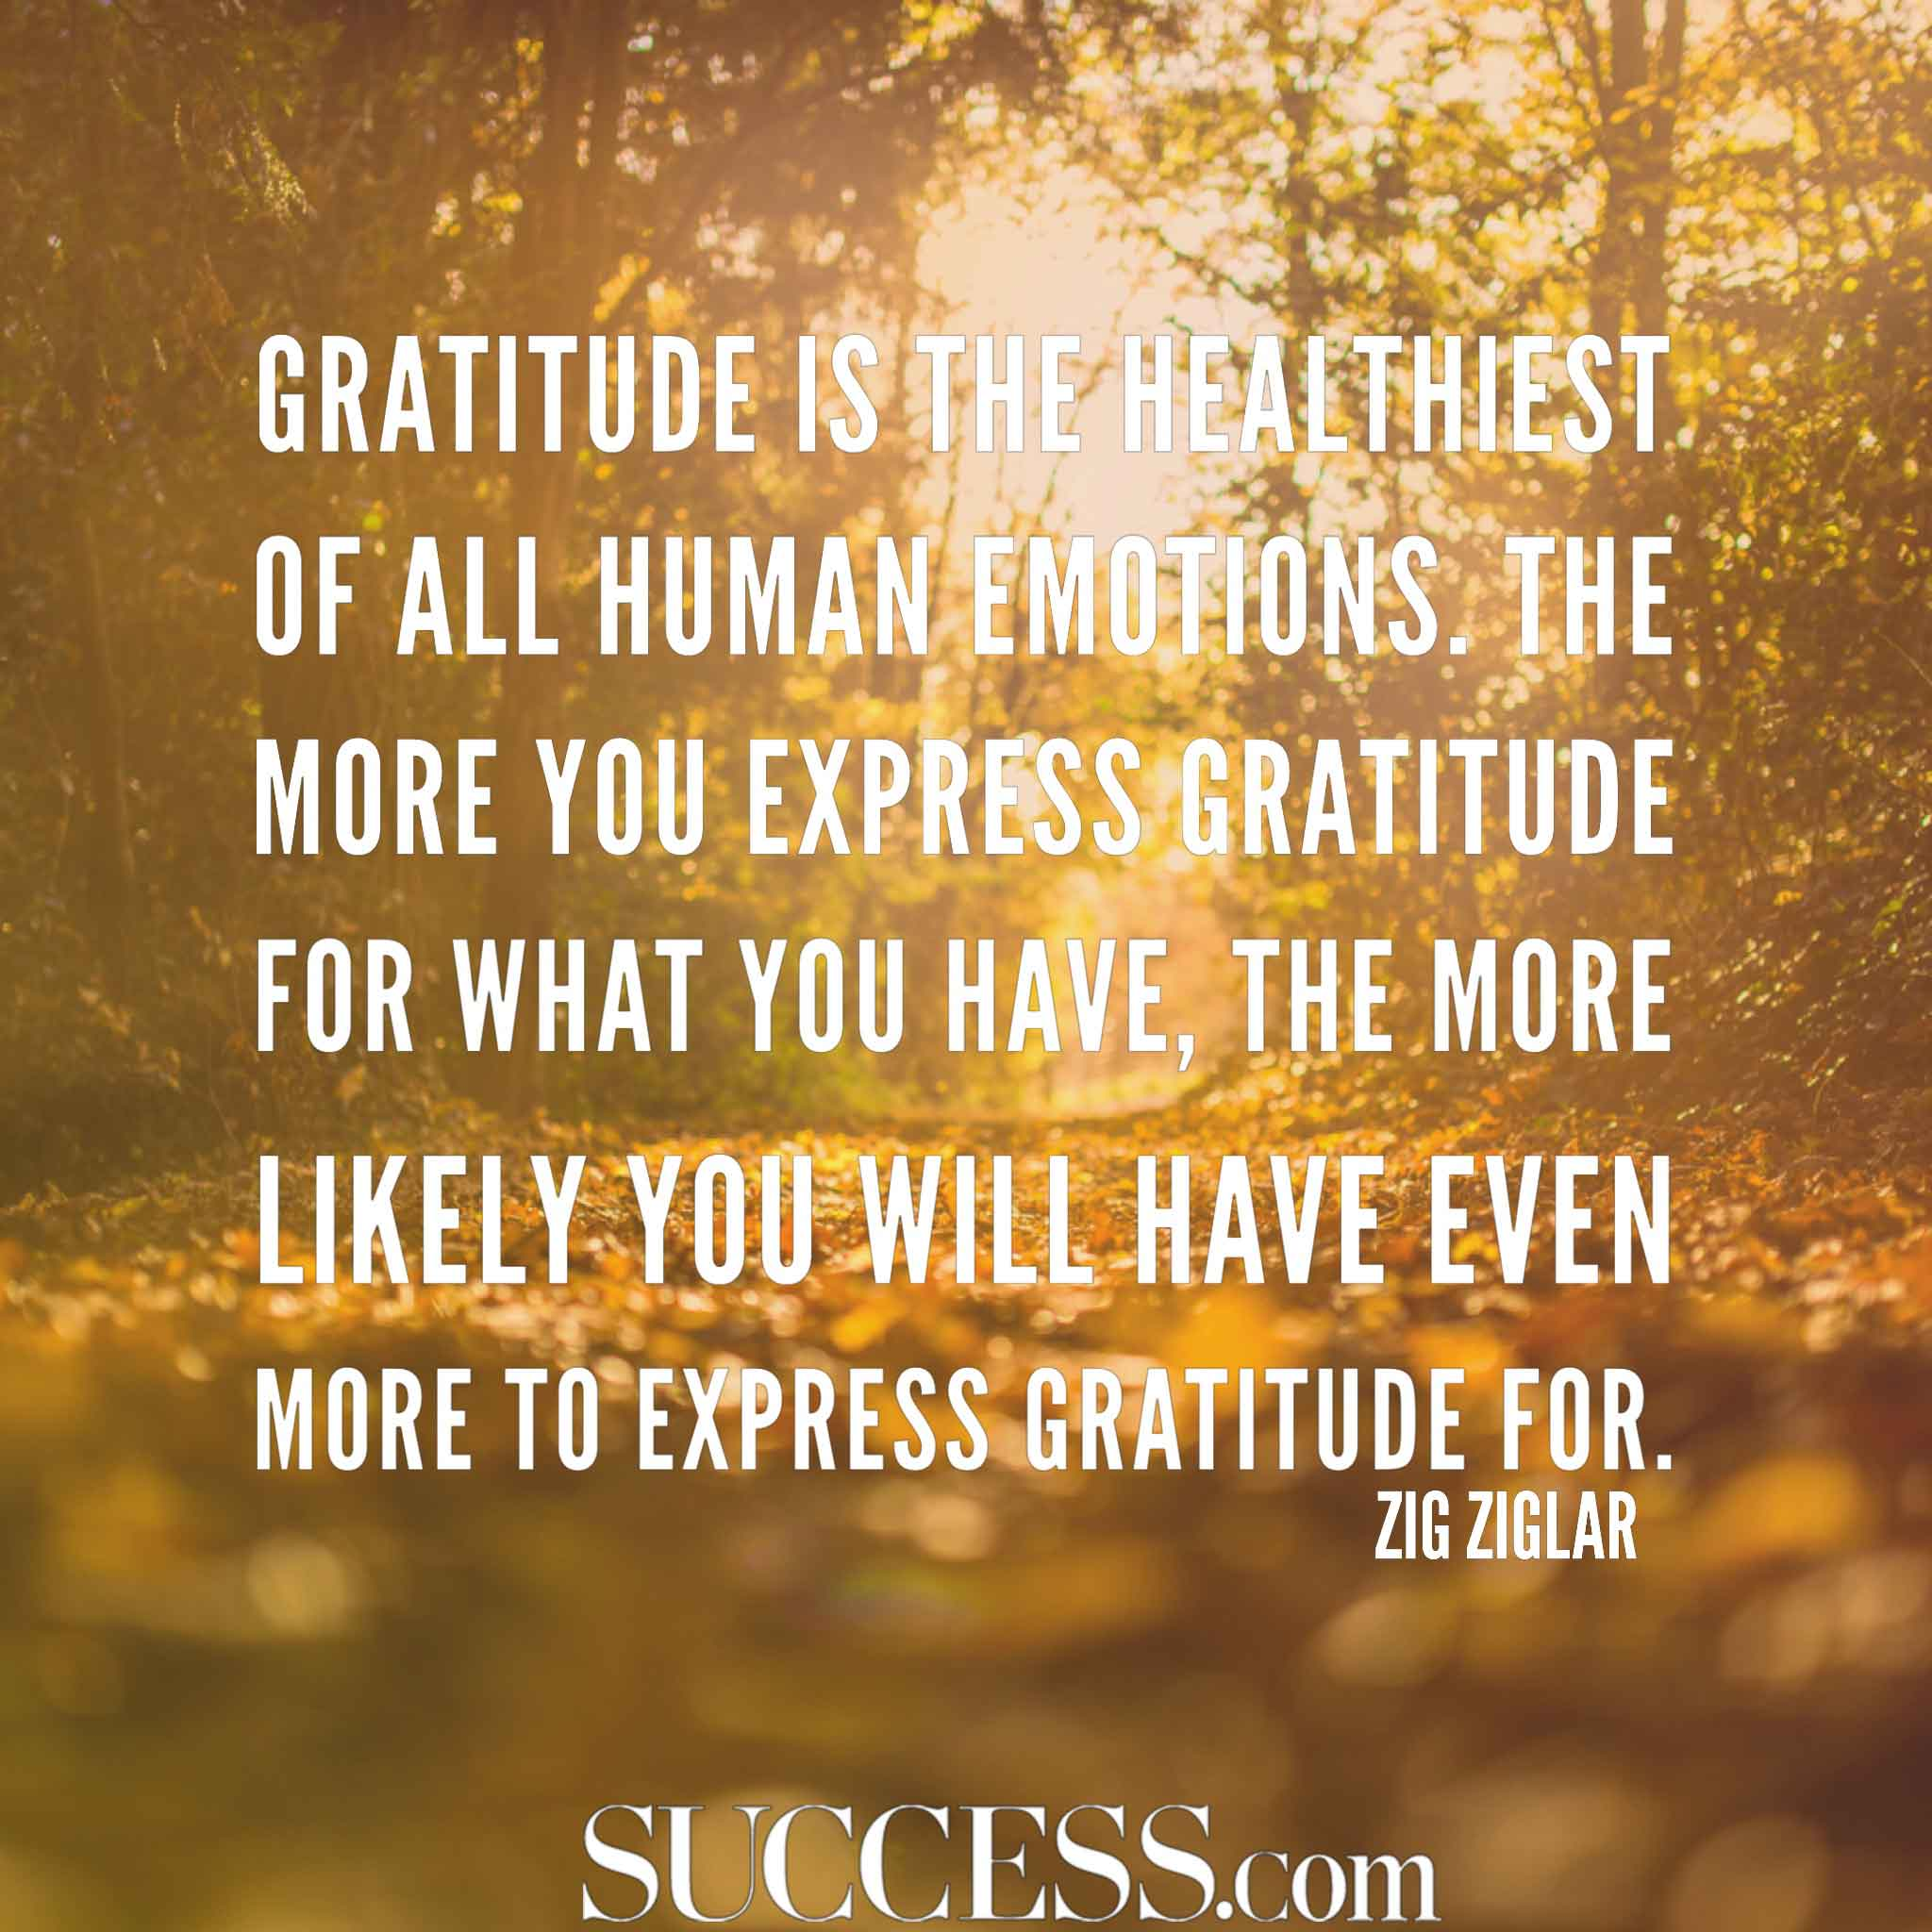 Image of: Love Quotes Success Magazine 15 Thoughtful Quotes About Gratitude